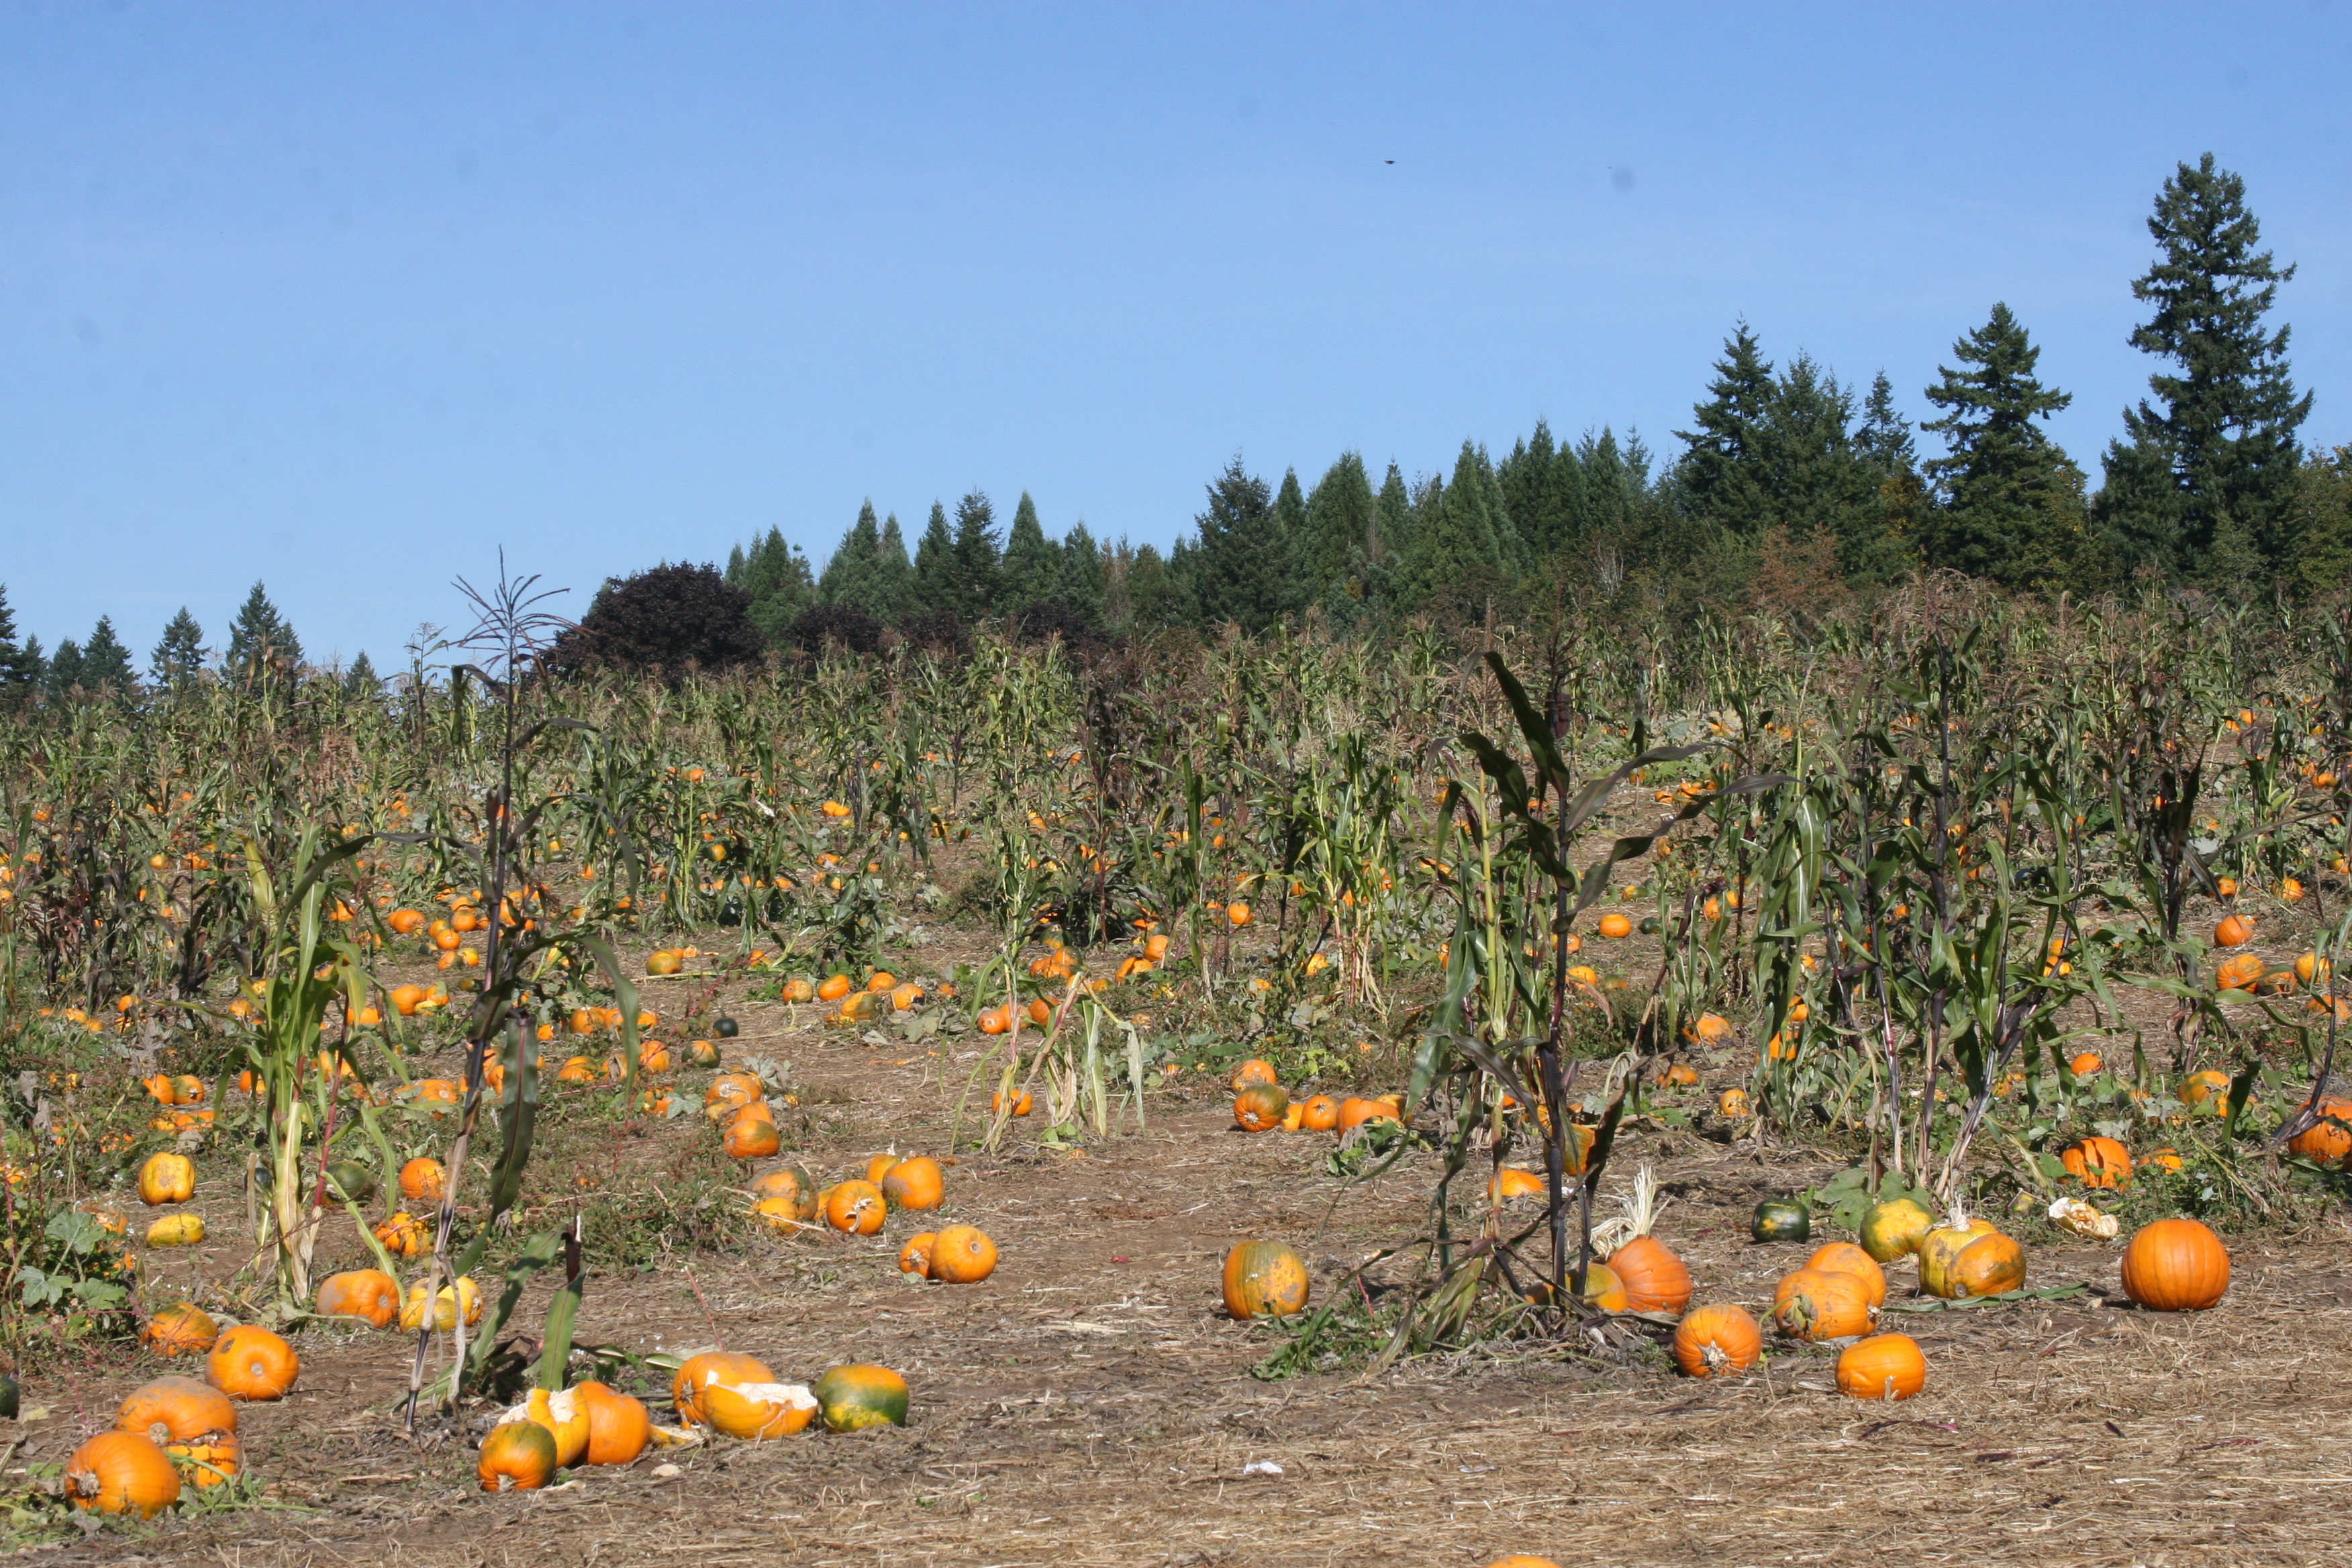 Our outing to the pumpkin patch on Sauvie Island in Willamette River